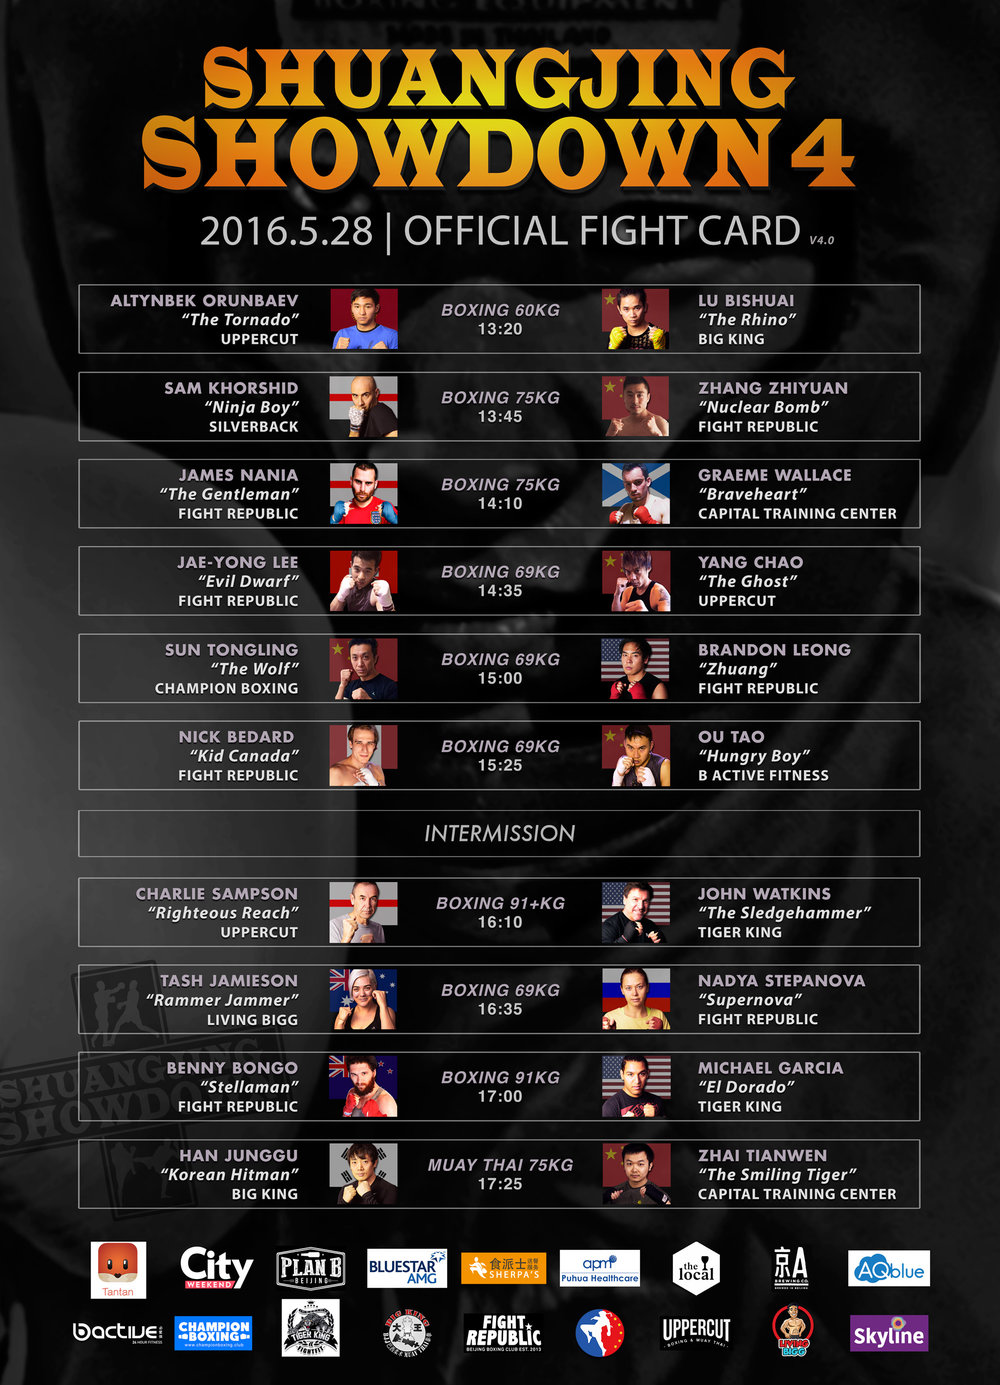 SS4_Fight_Card_Times_06_WEB.jpg